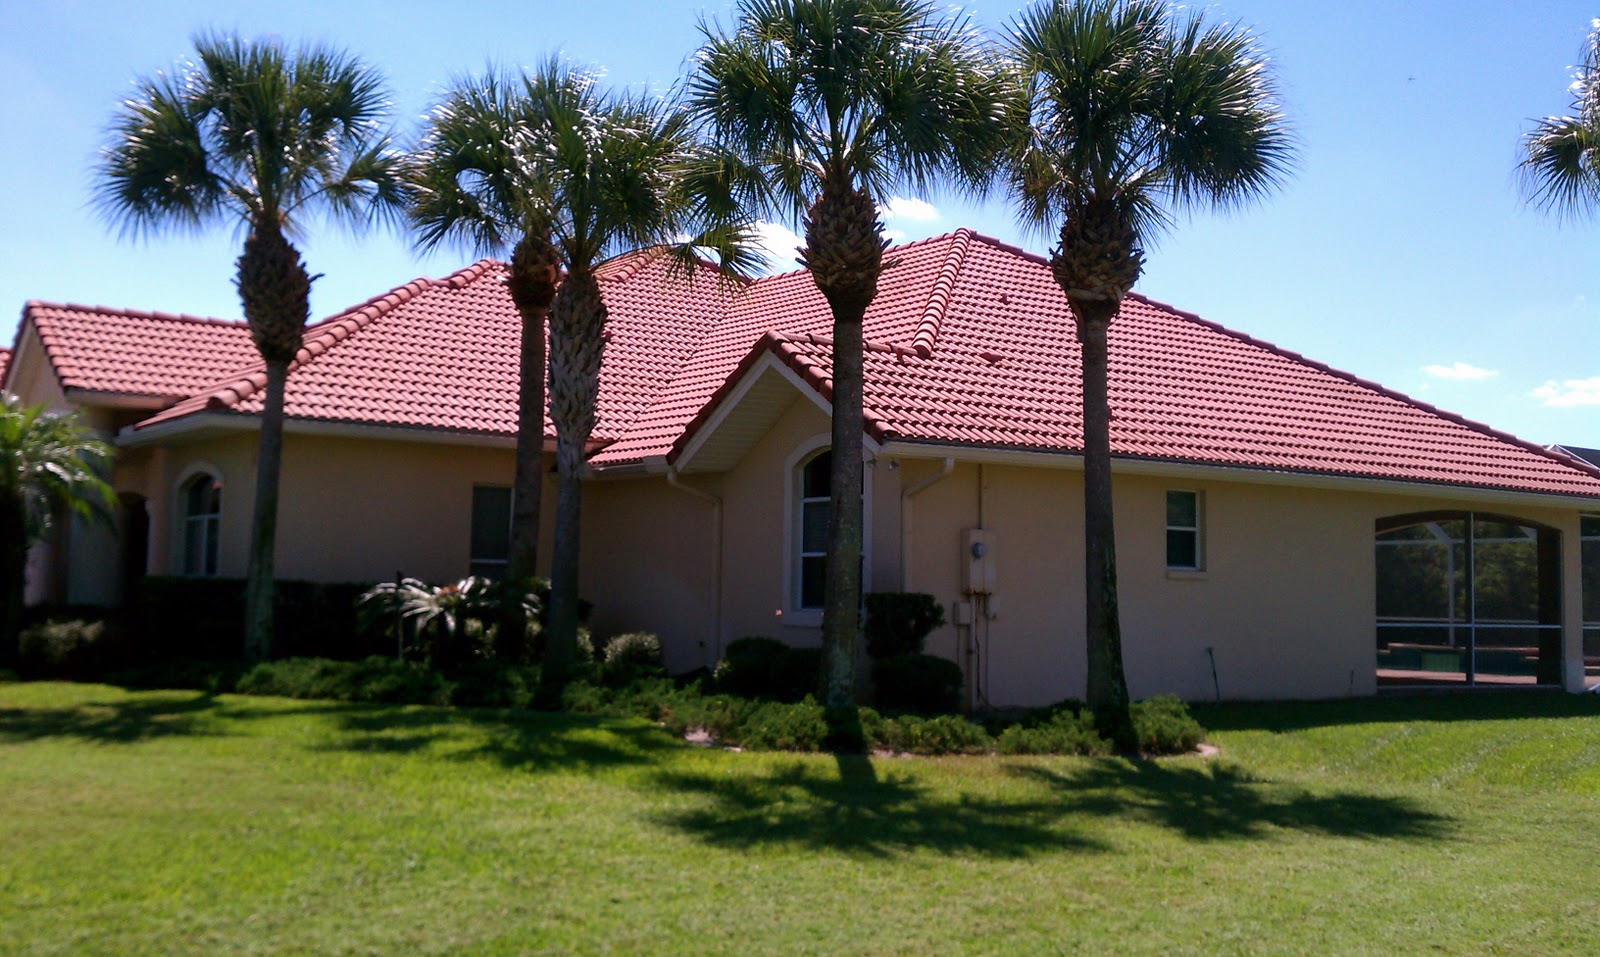 Beacon Roof Exterior Cleaning Melbourne Florida Tile Roof Cleaning